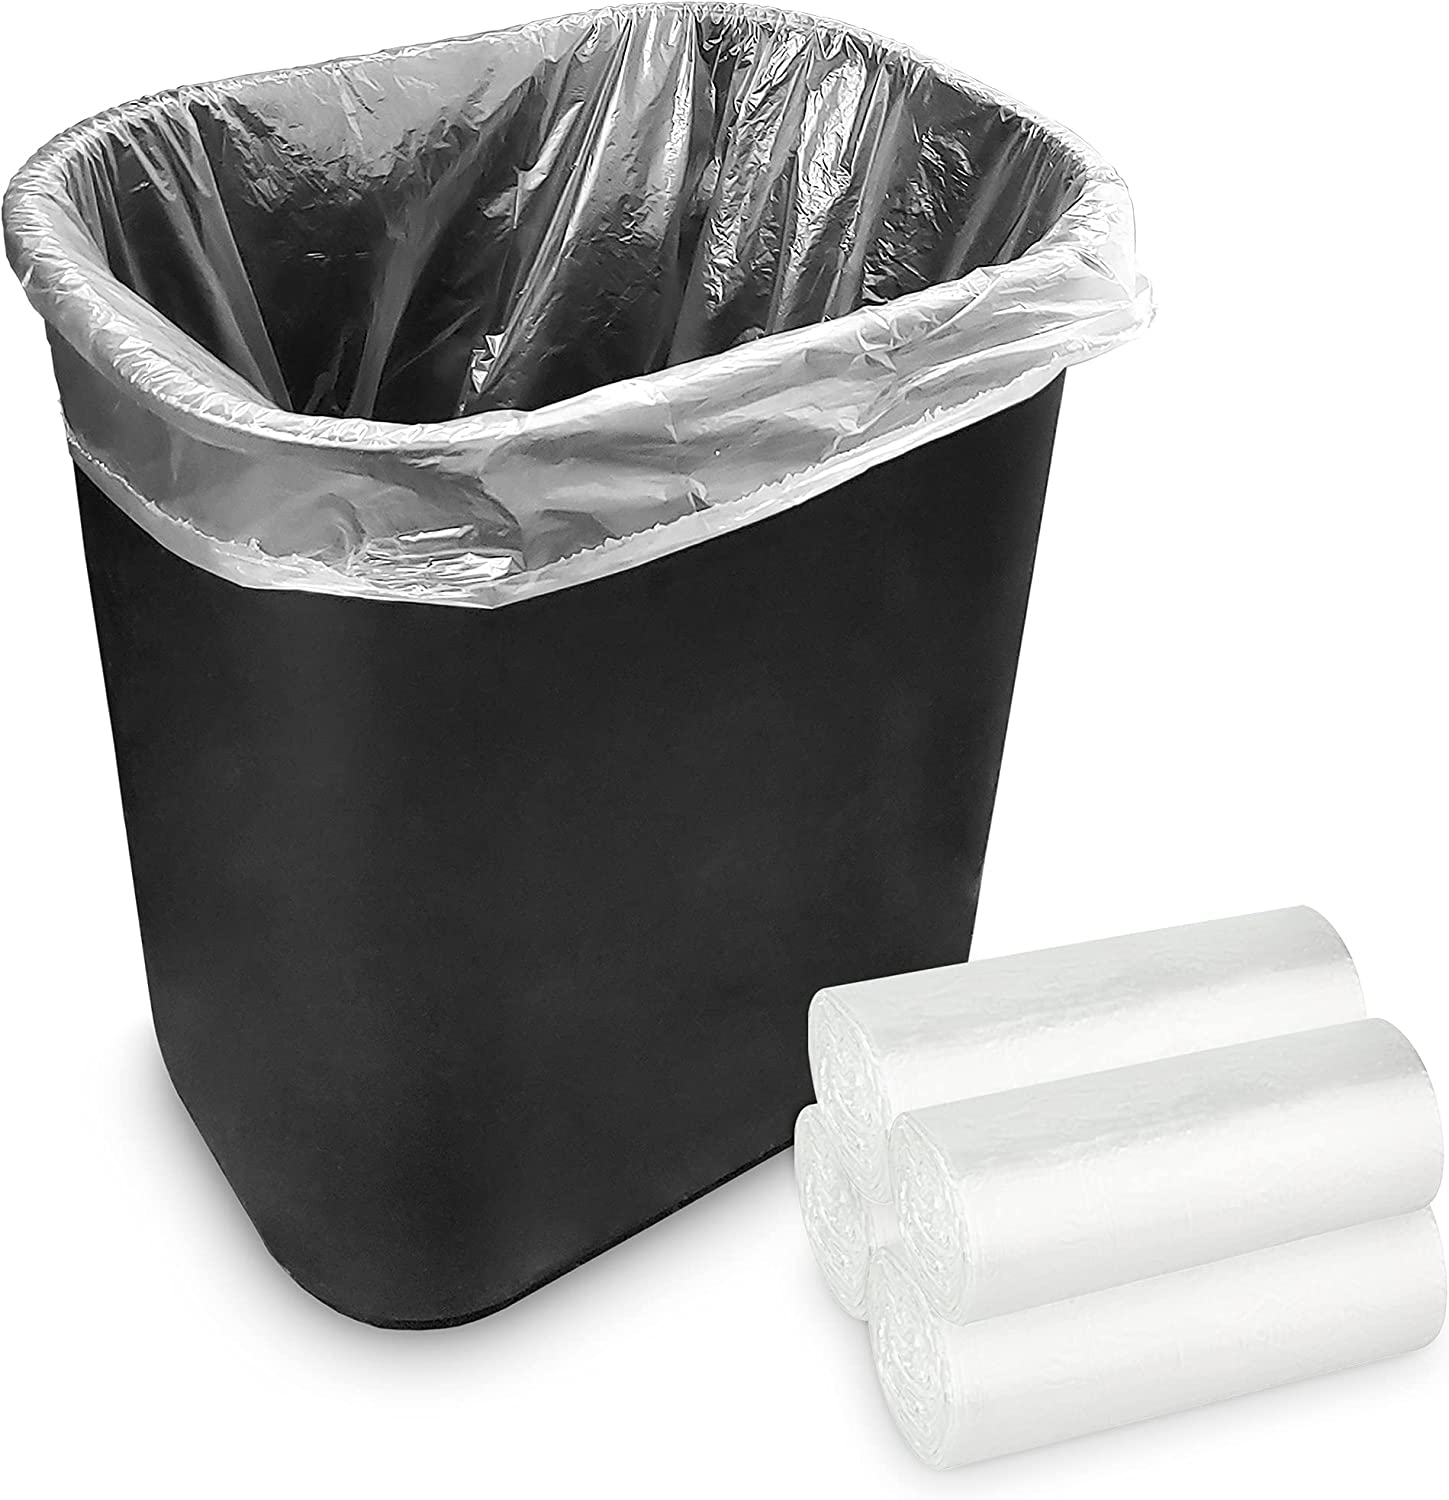 Stock Your Home 2 Gallon Clear Trash Bags (200 Pack) - Disposable Plastic Garbage Bags - Leak Resistant Waste Can Liner - Small Bags for Office, Bathroom, Deli, Produce Section, Dog Poop, Cat Litter